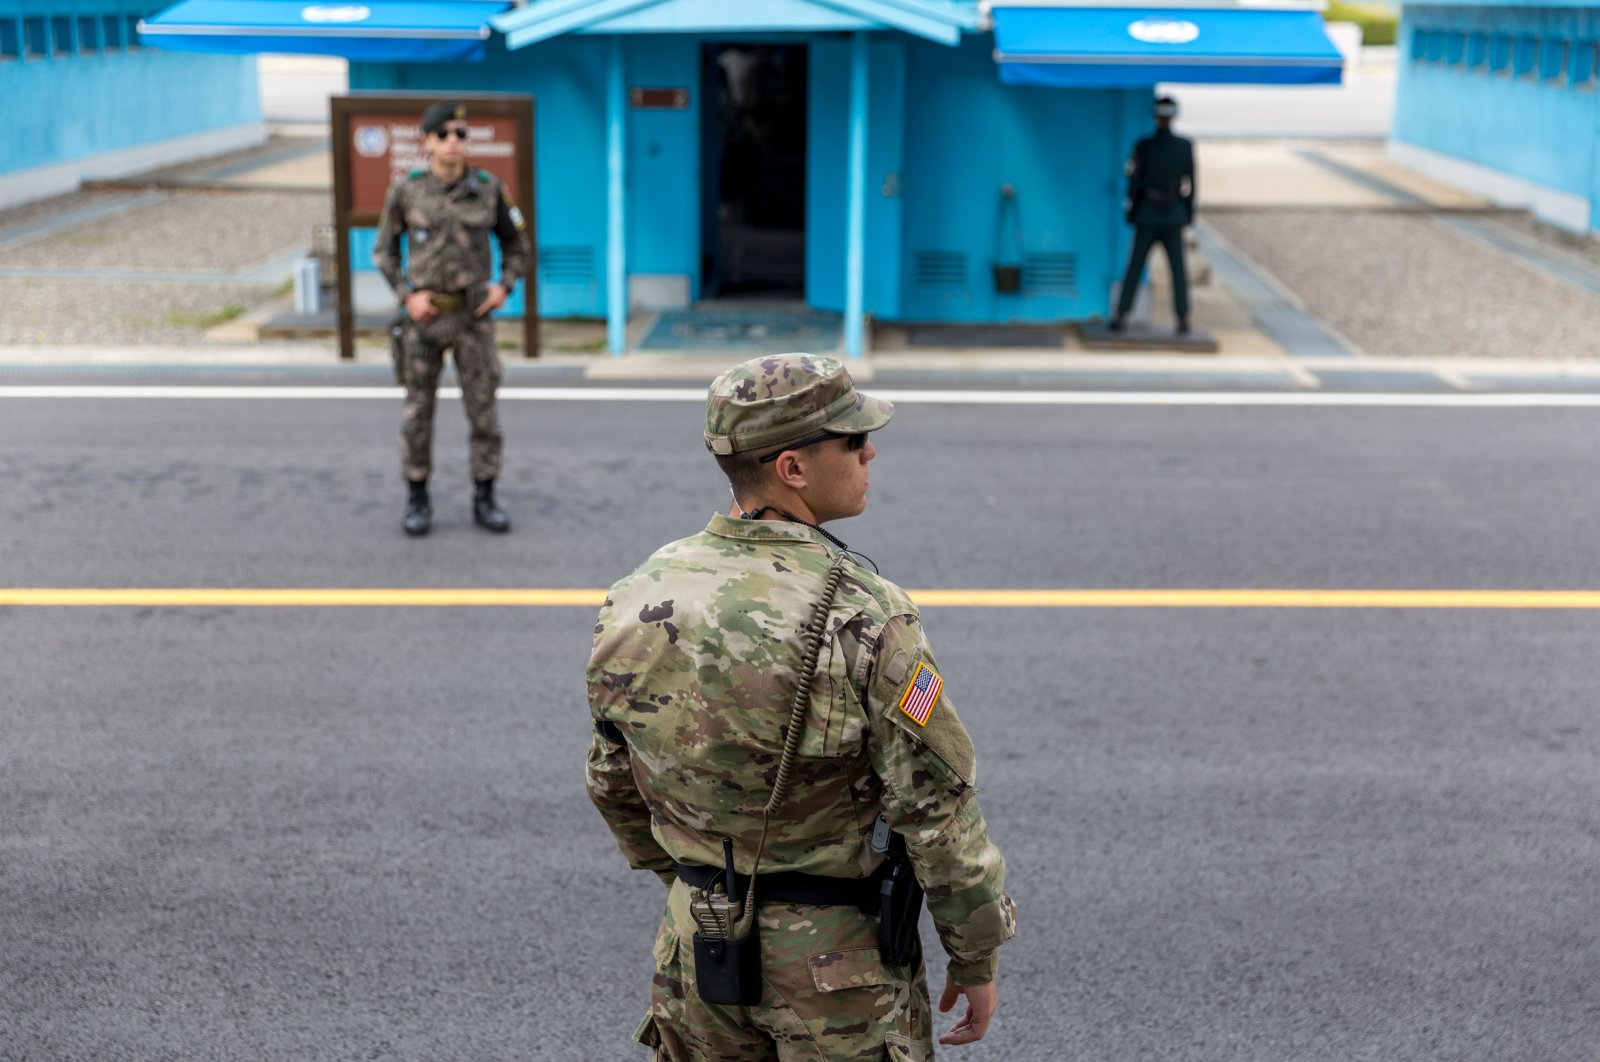 U.S. Marine and two Republic of Korea (ROK) soldiers watching over the demilitarized zone (DMZ) at the Korean border, Joint Security Area, Kaesong, South Korea, April 22, 2017. (Shutterstock Photo)